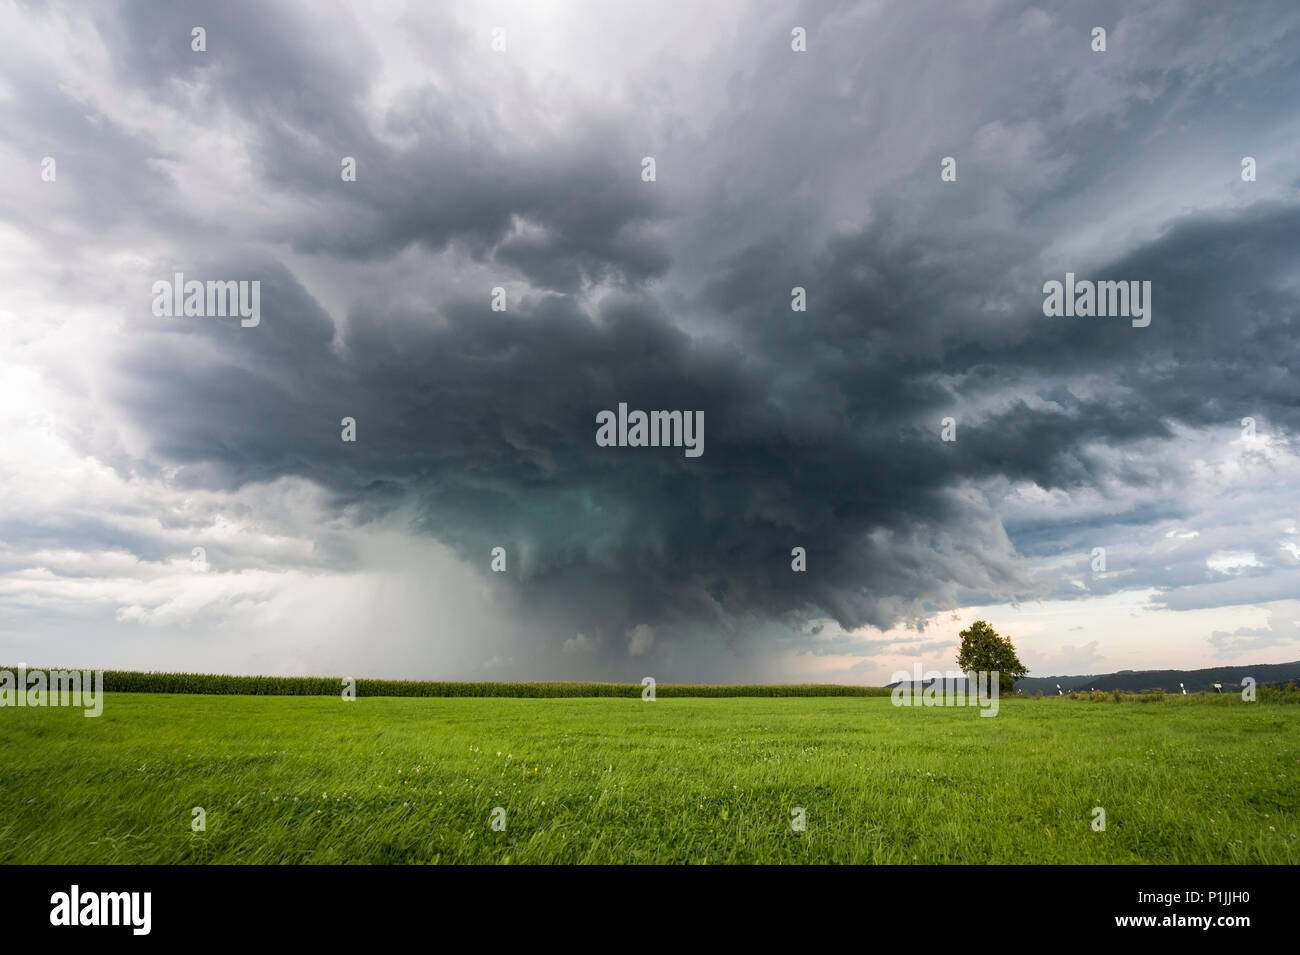 Green glowing precipitation core of a supercell next to a street near Altdorf, Nuremberg, Bavaria, Germany - Stock Image